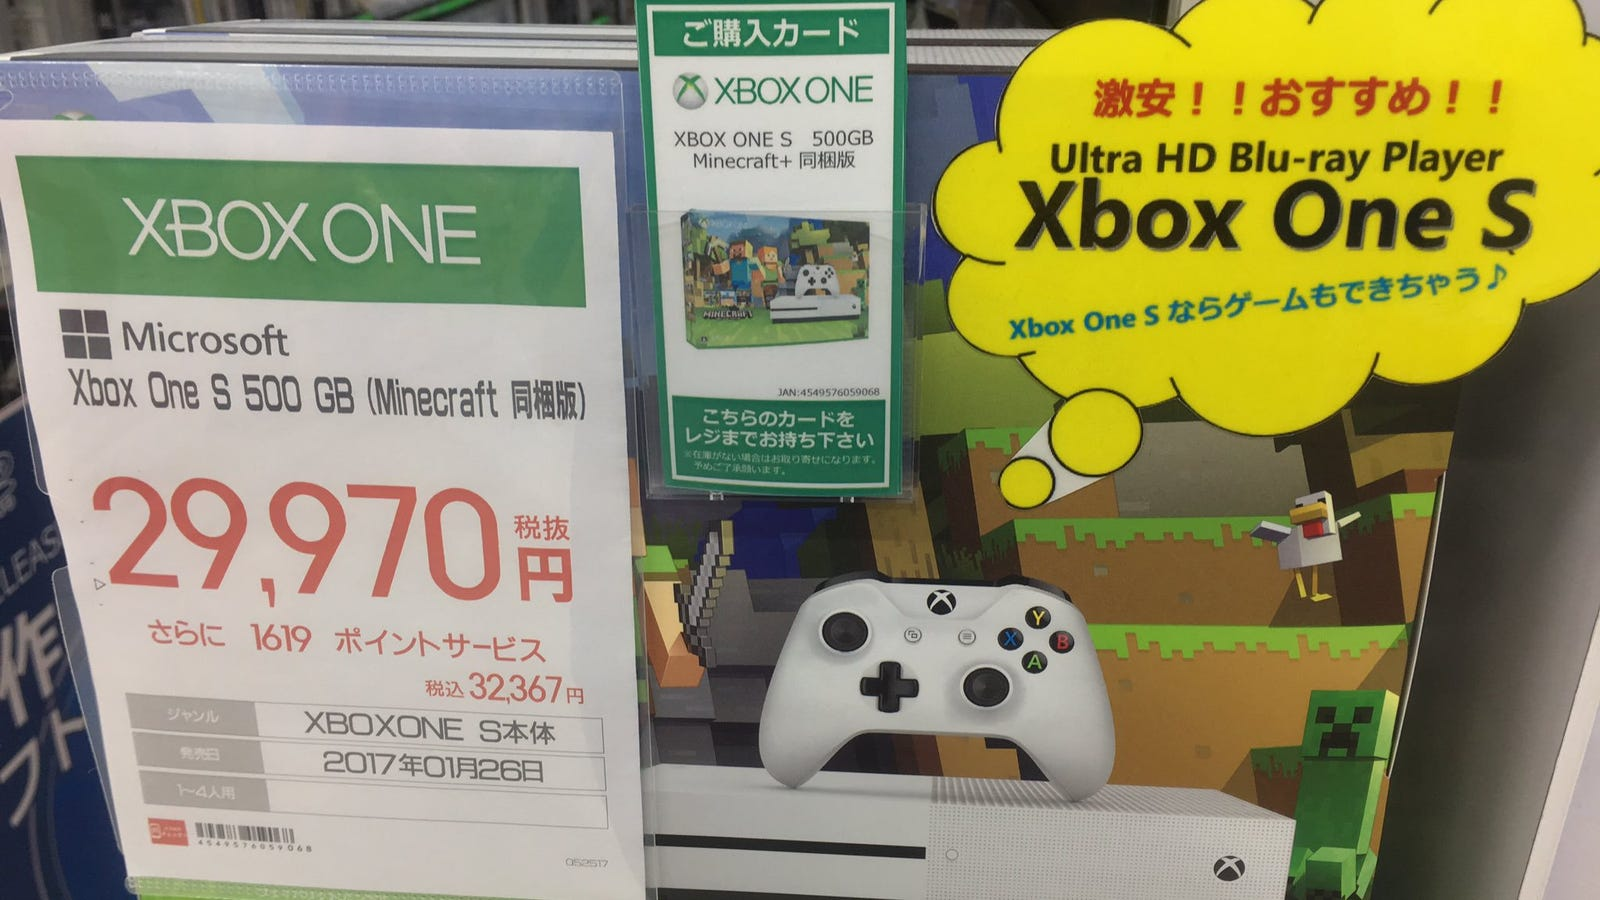 xbox one s sold as ultra hd blu ray player in japan. Black Bedroom Furniture Sets. Home Design Ideas